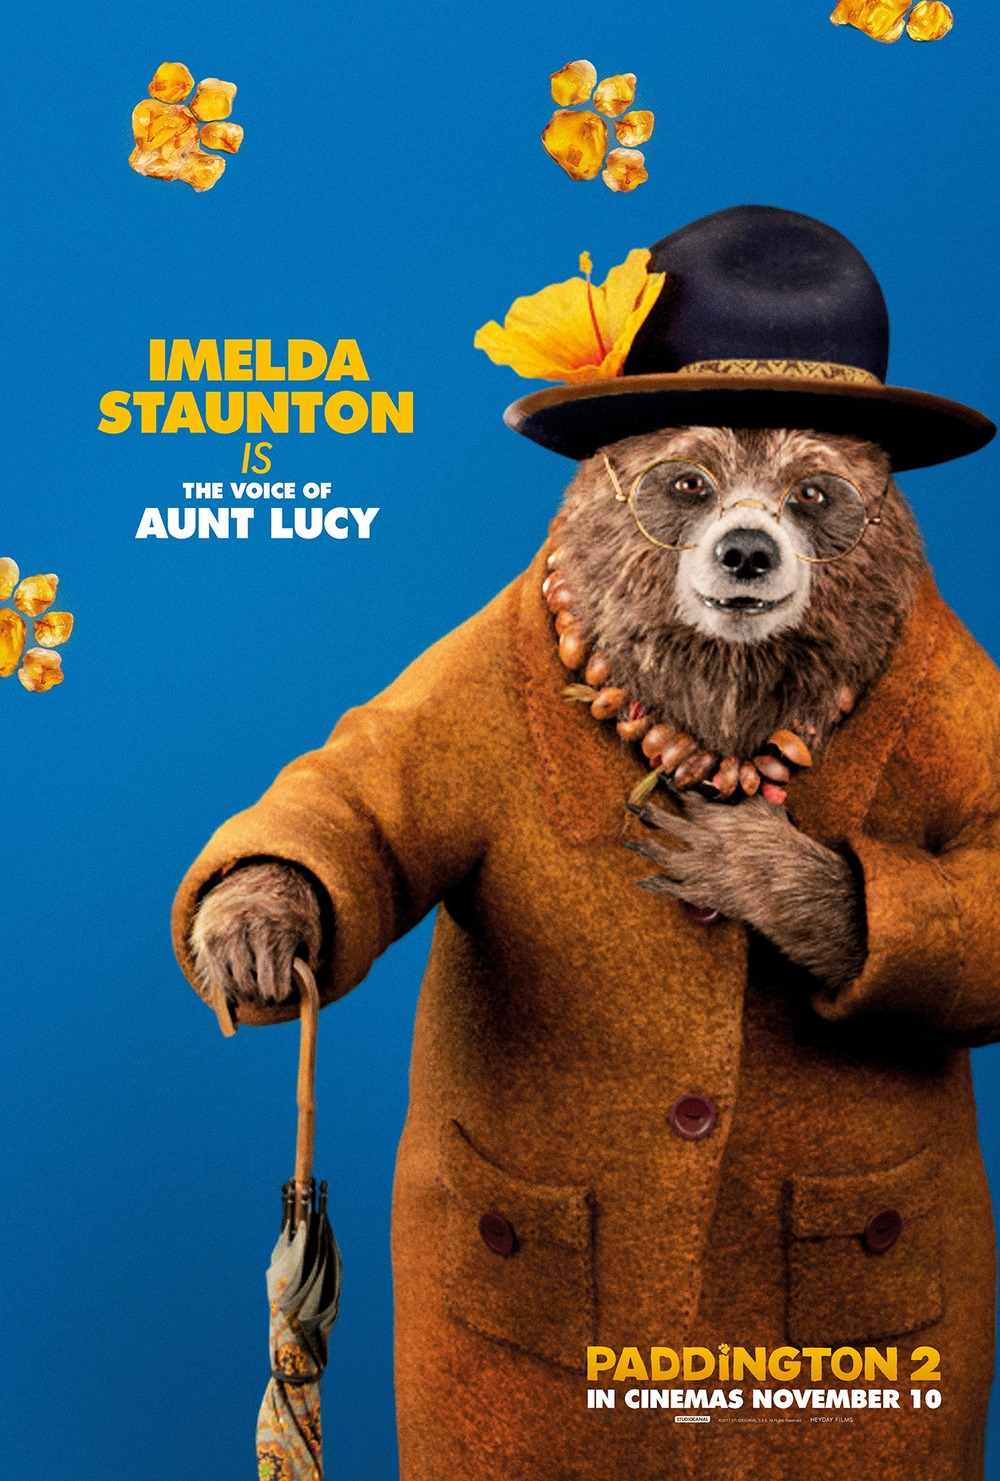 Paddington dvd release date in Australia